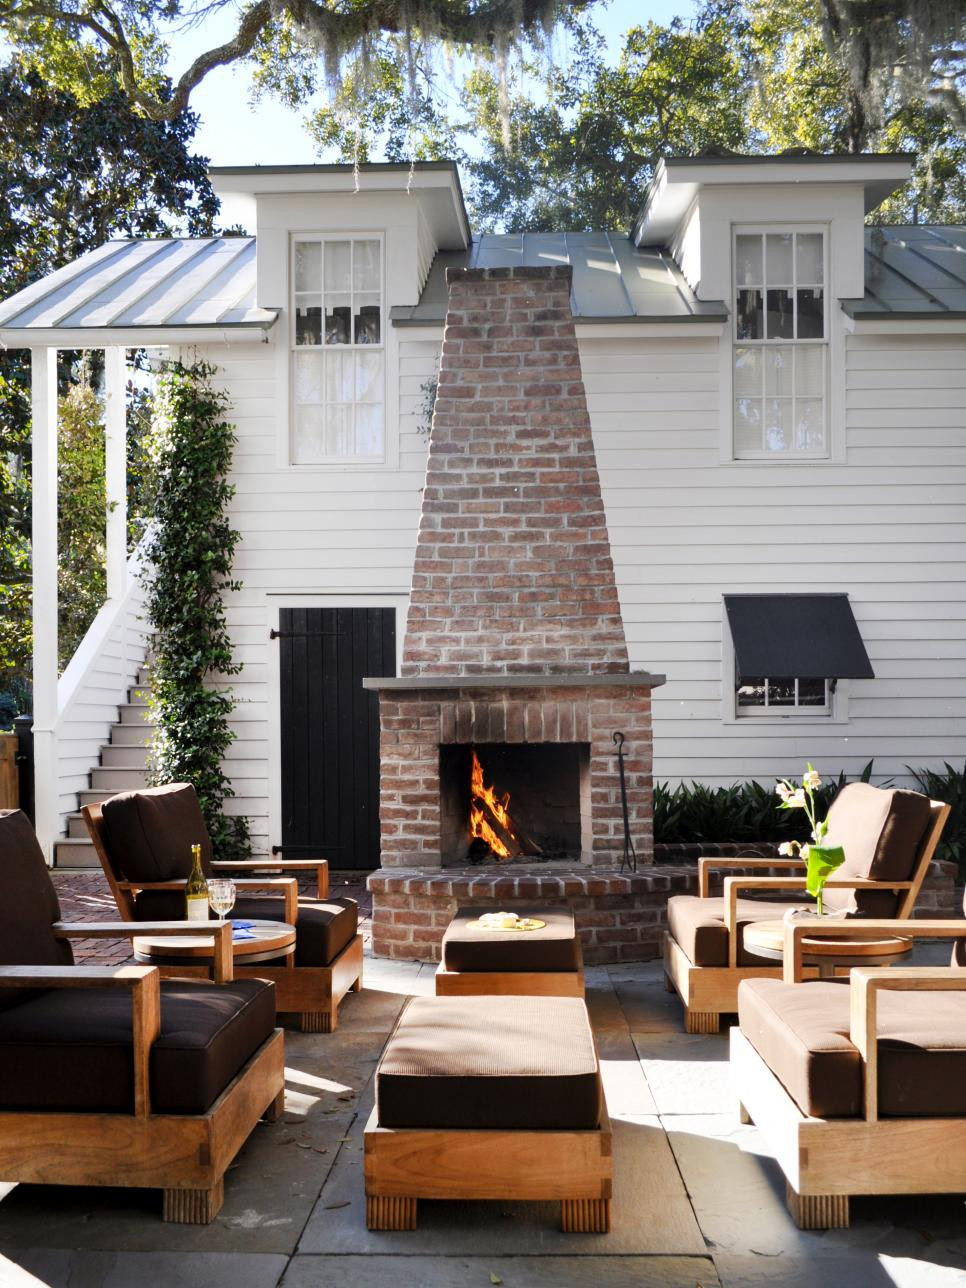 Outdoor Fireplace Design Outdoor Fireplace Ideas Design Ideas for Outdoor